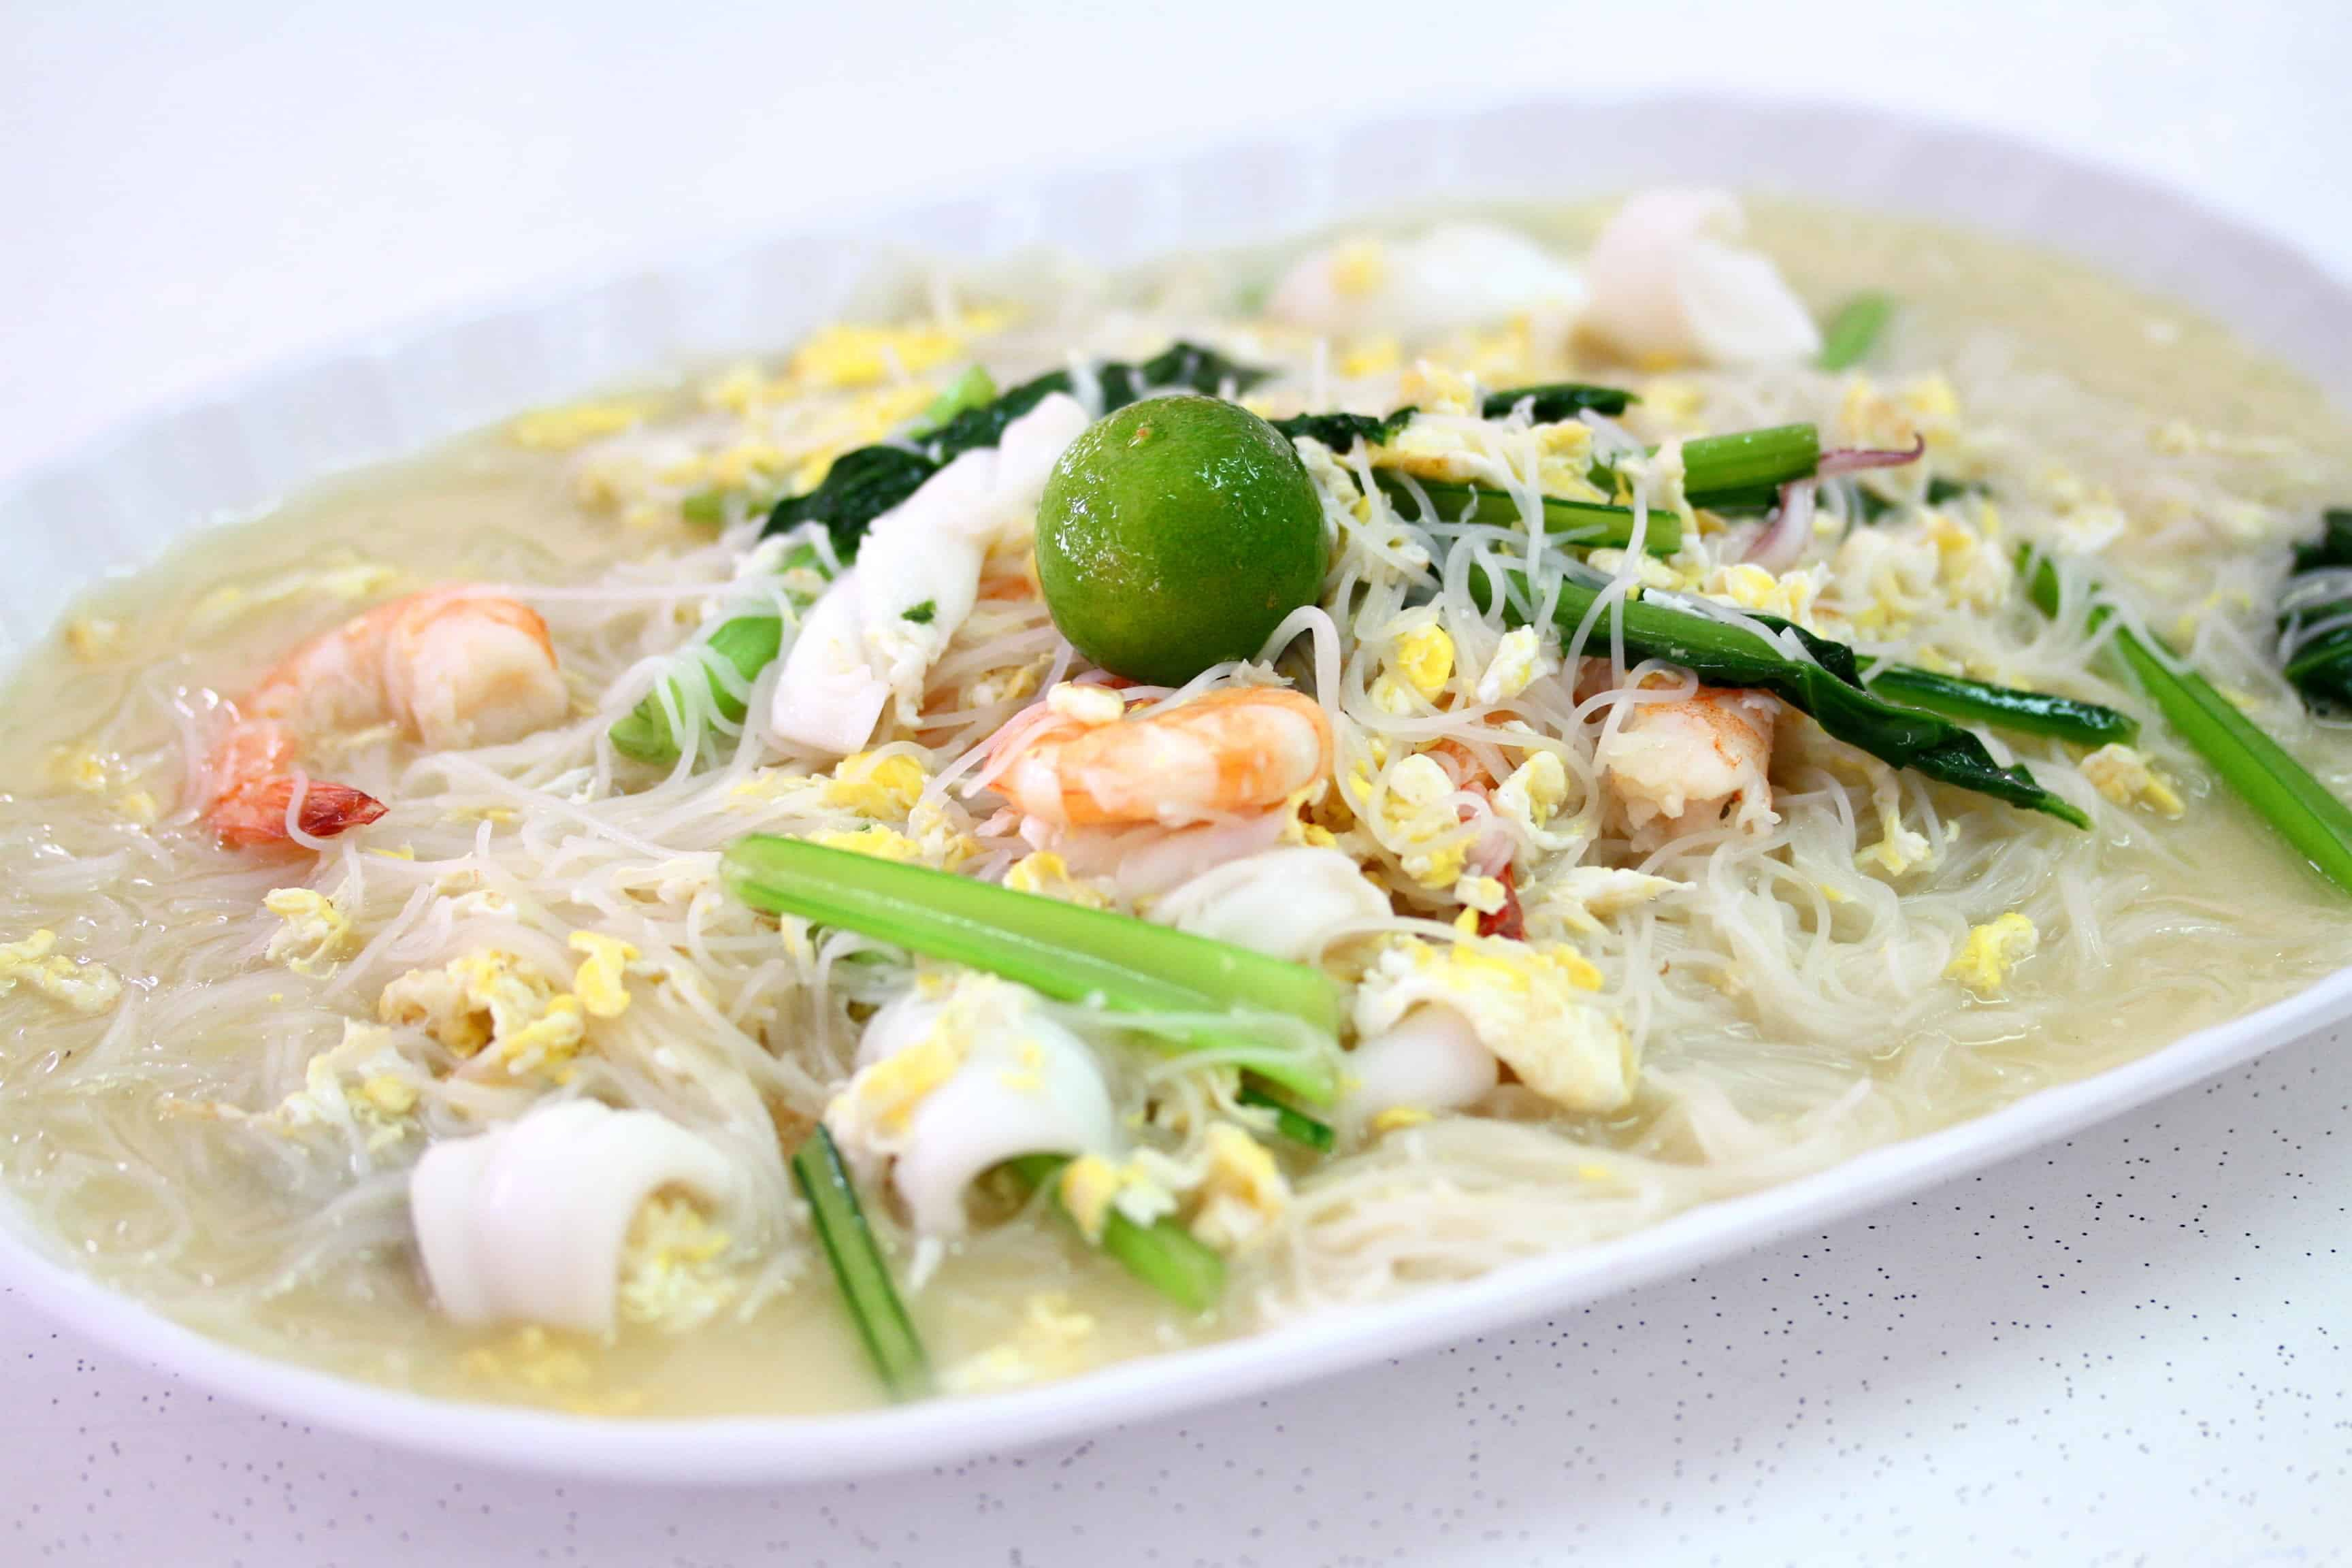 One of our famed local dishes - Sembawang White Beehoon